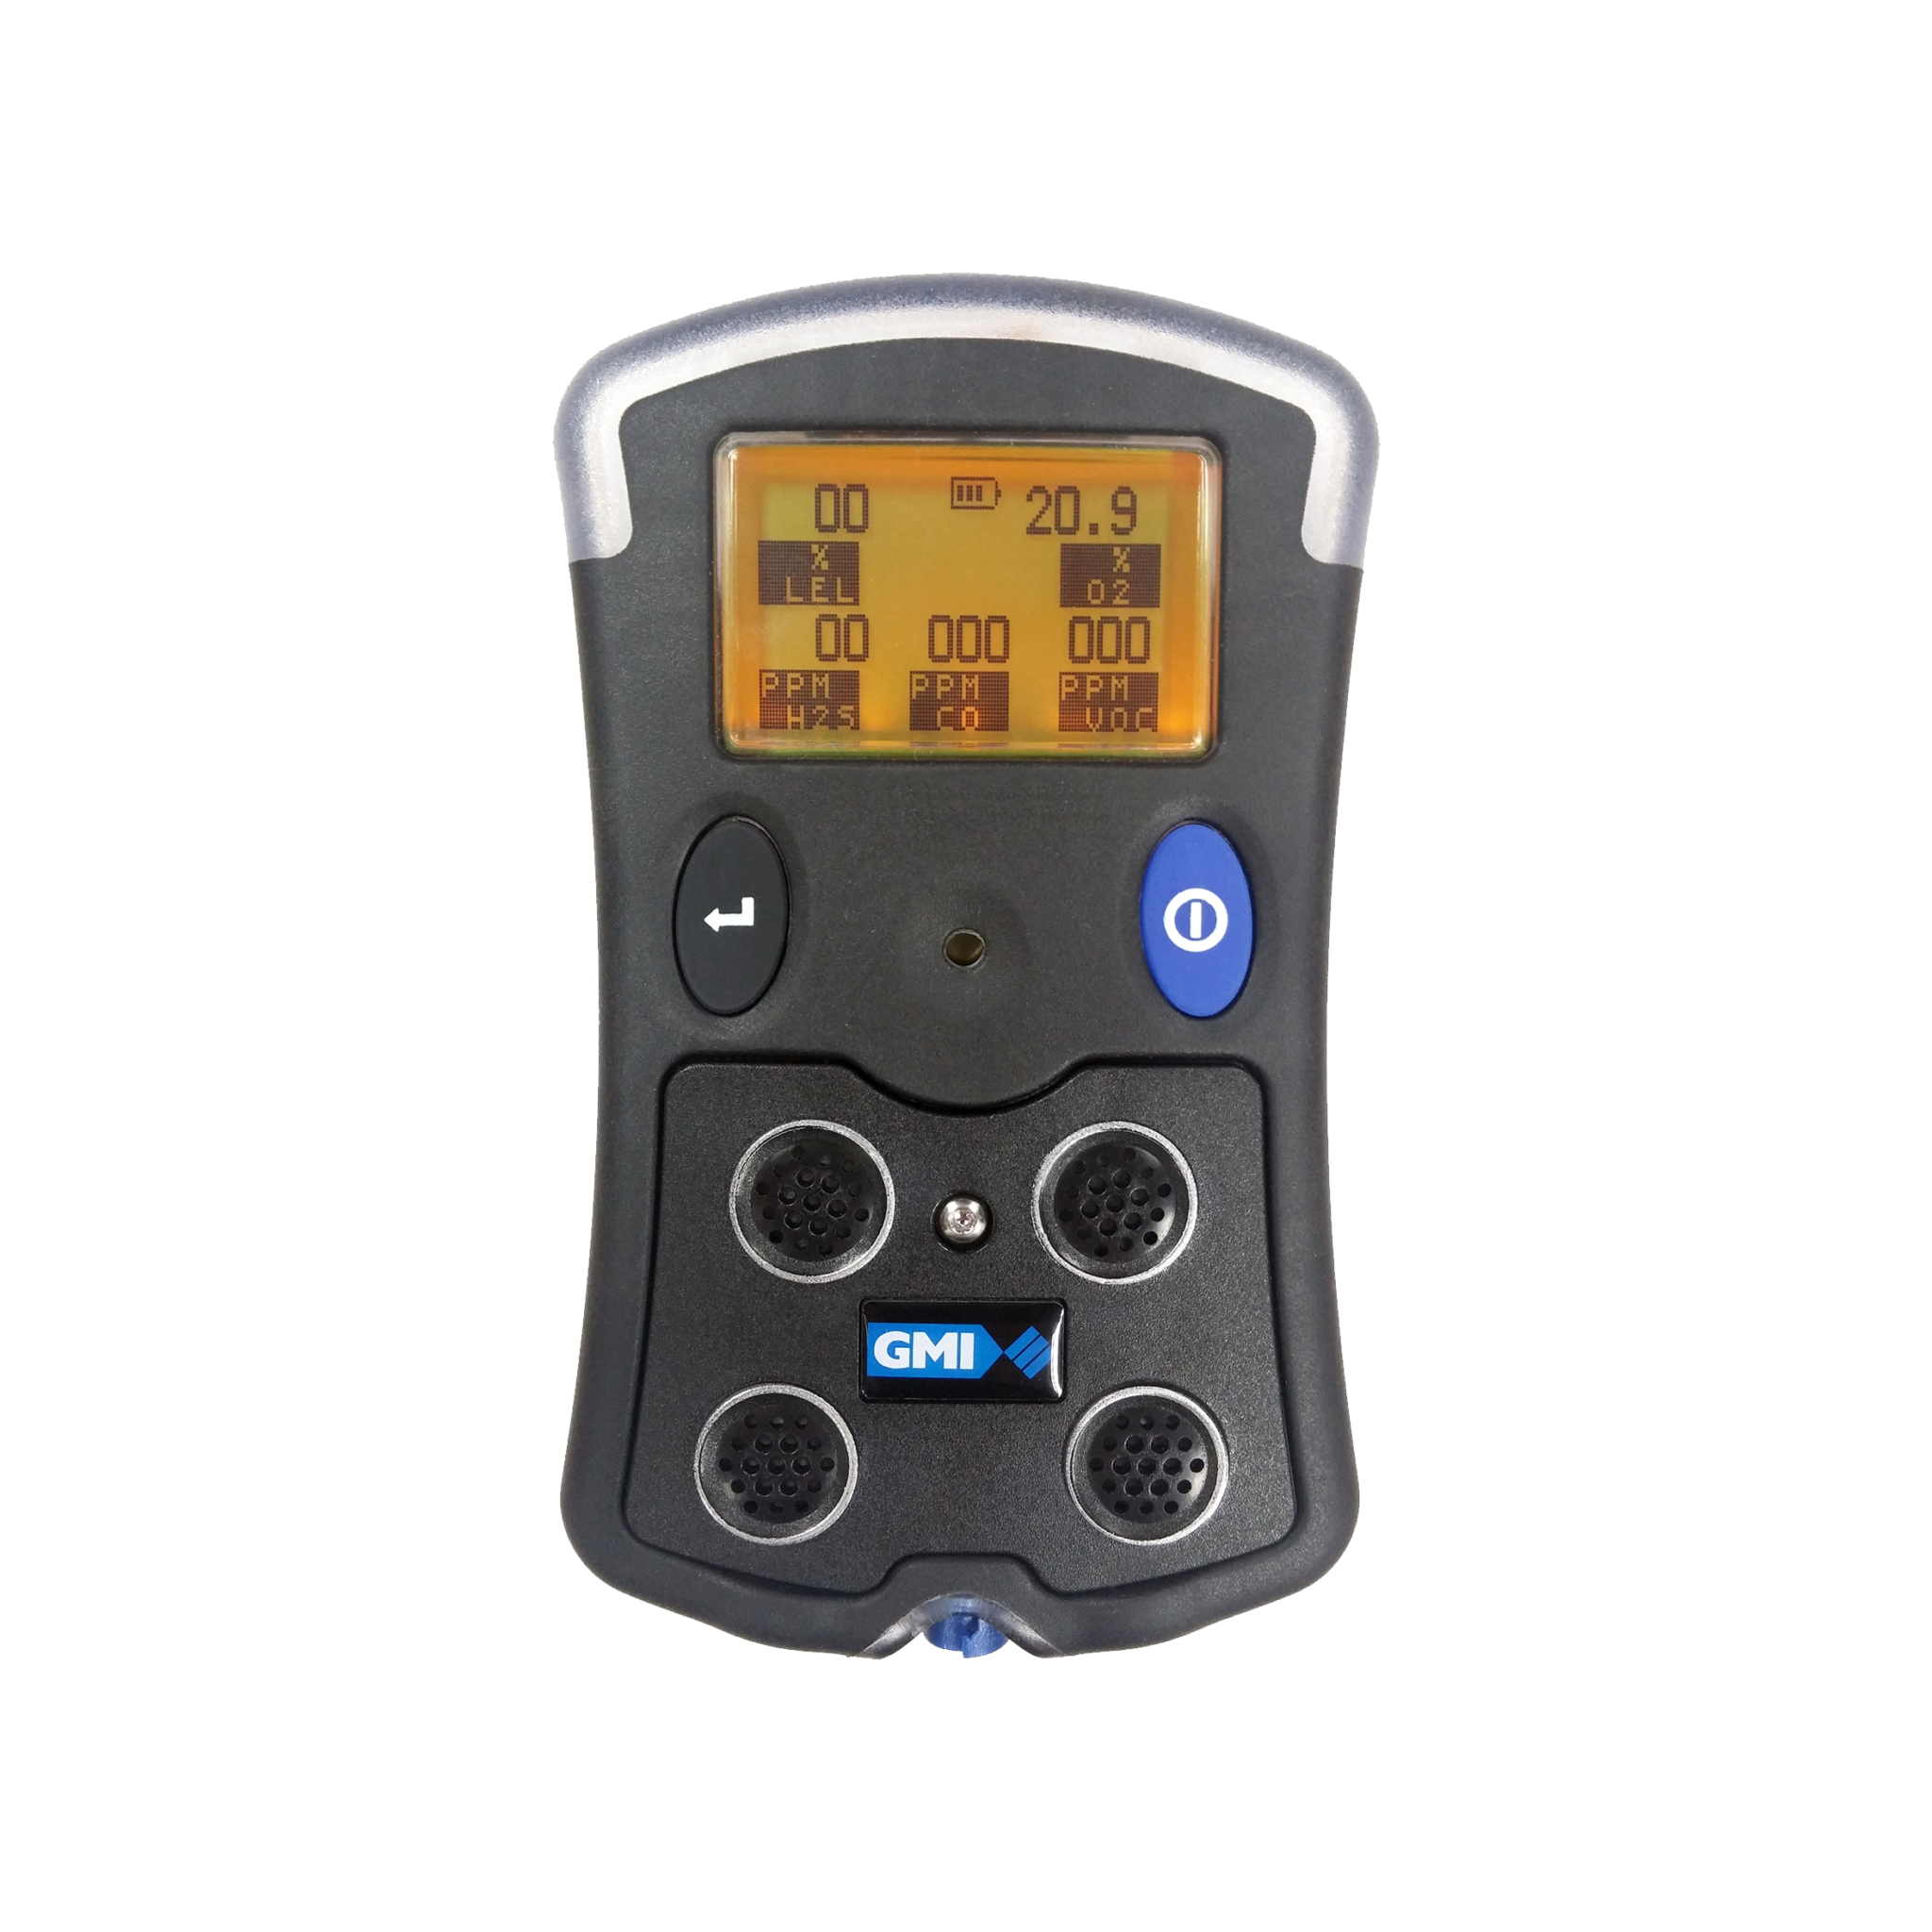 //Final GMI PS500 5-Gas multi gas detector